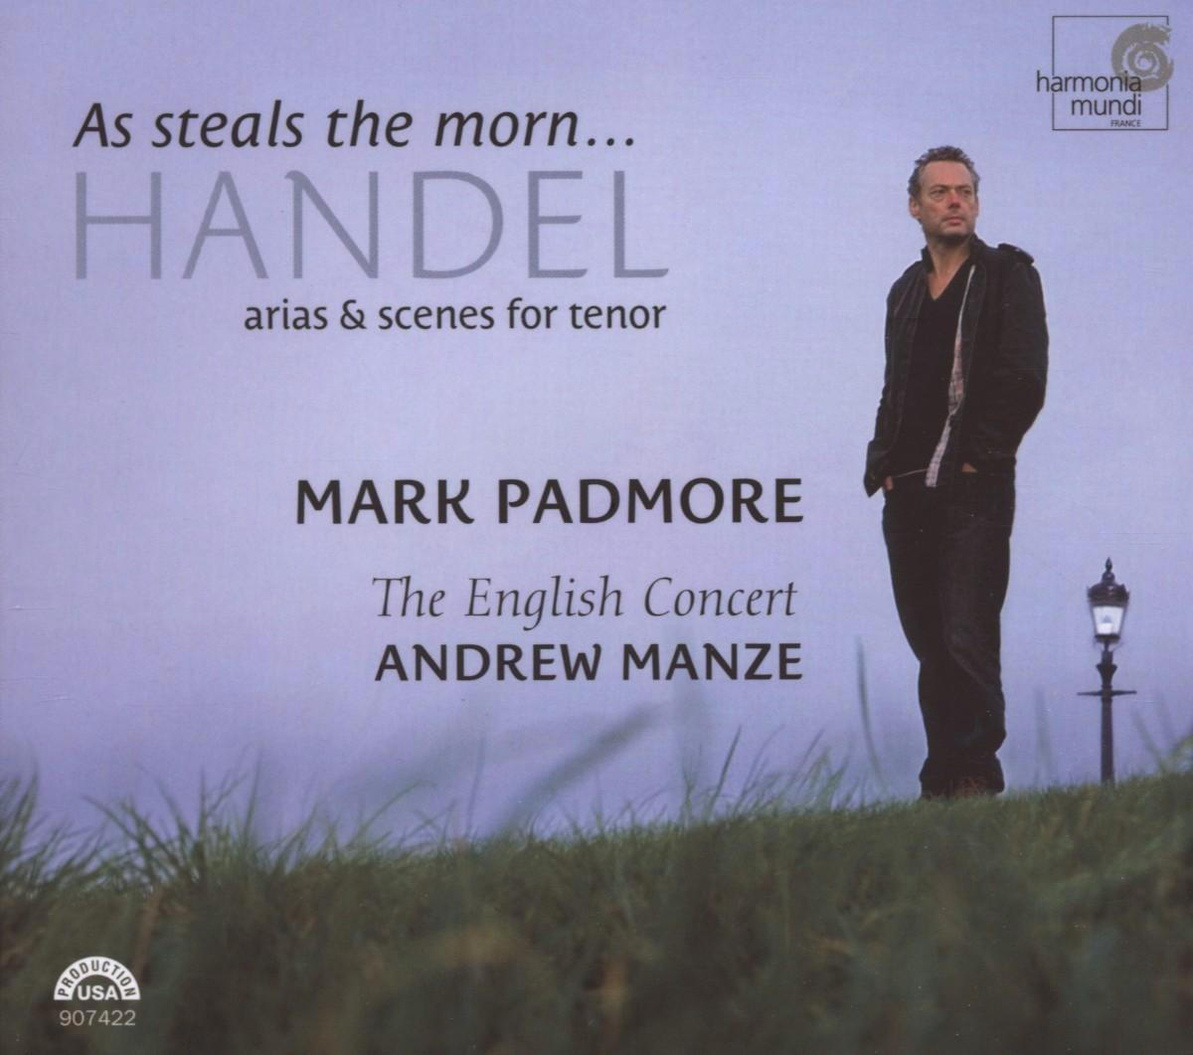 Mark Padmore - Mark Padmore - As steals the morn. Handel Arias & Scenes for Tenor